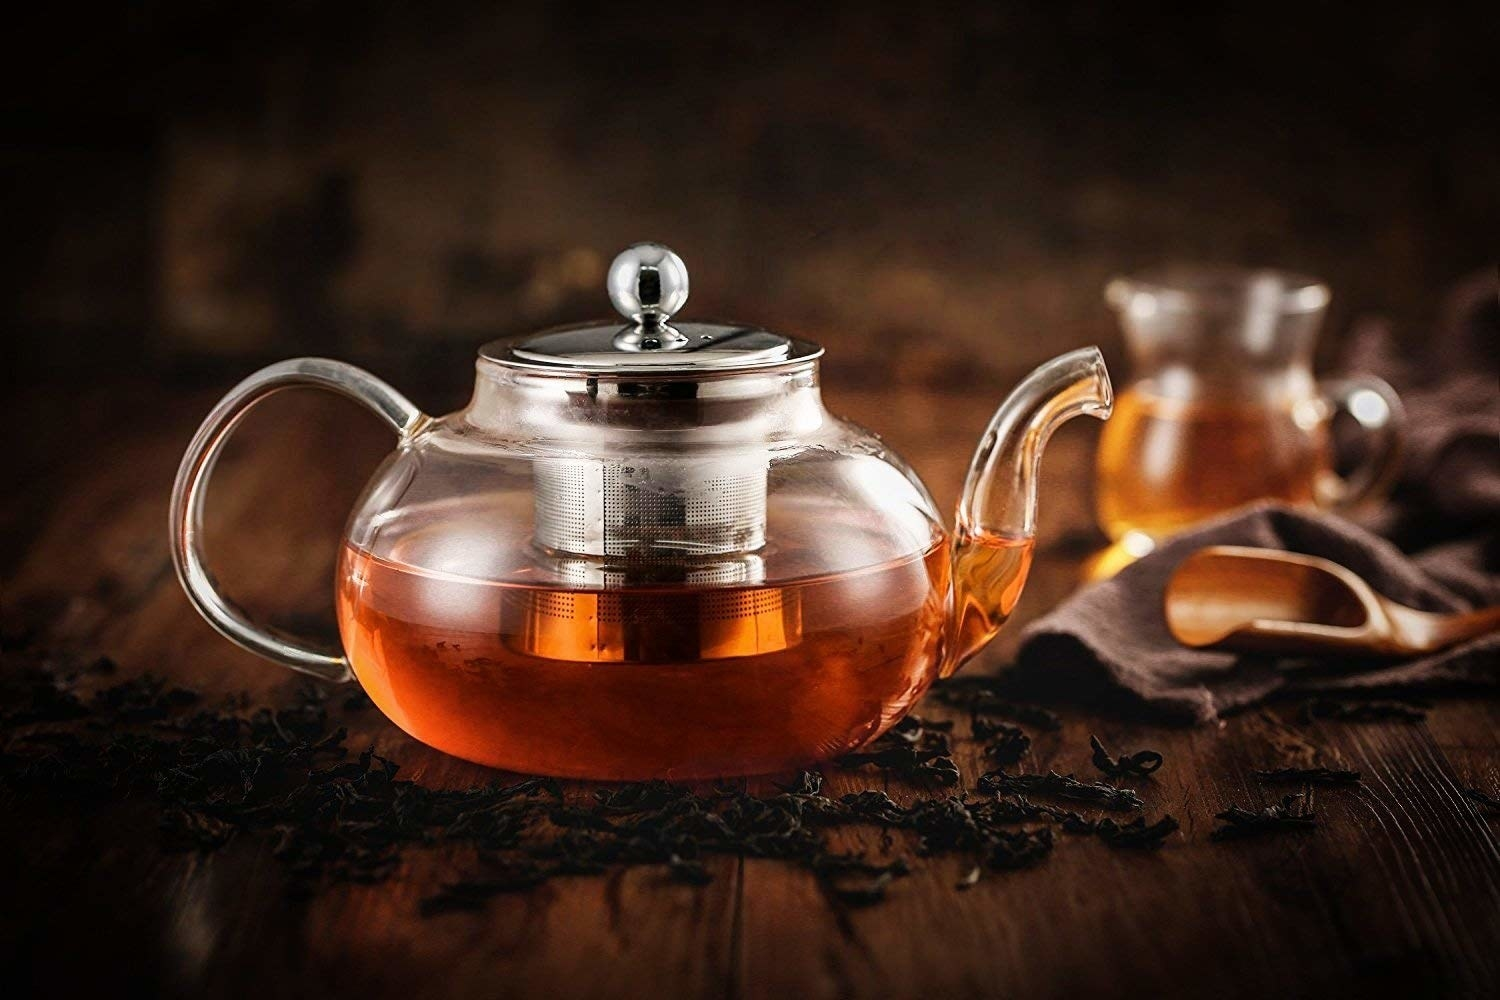 The teapot and diffuser filled with tea.